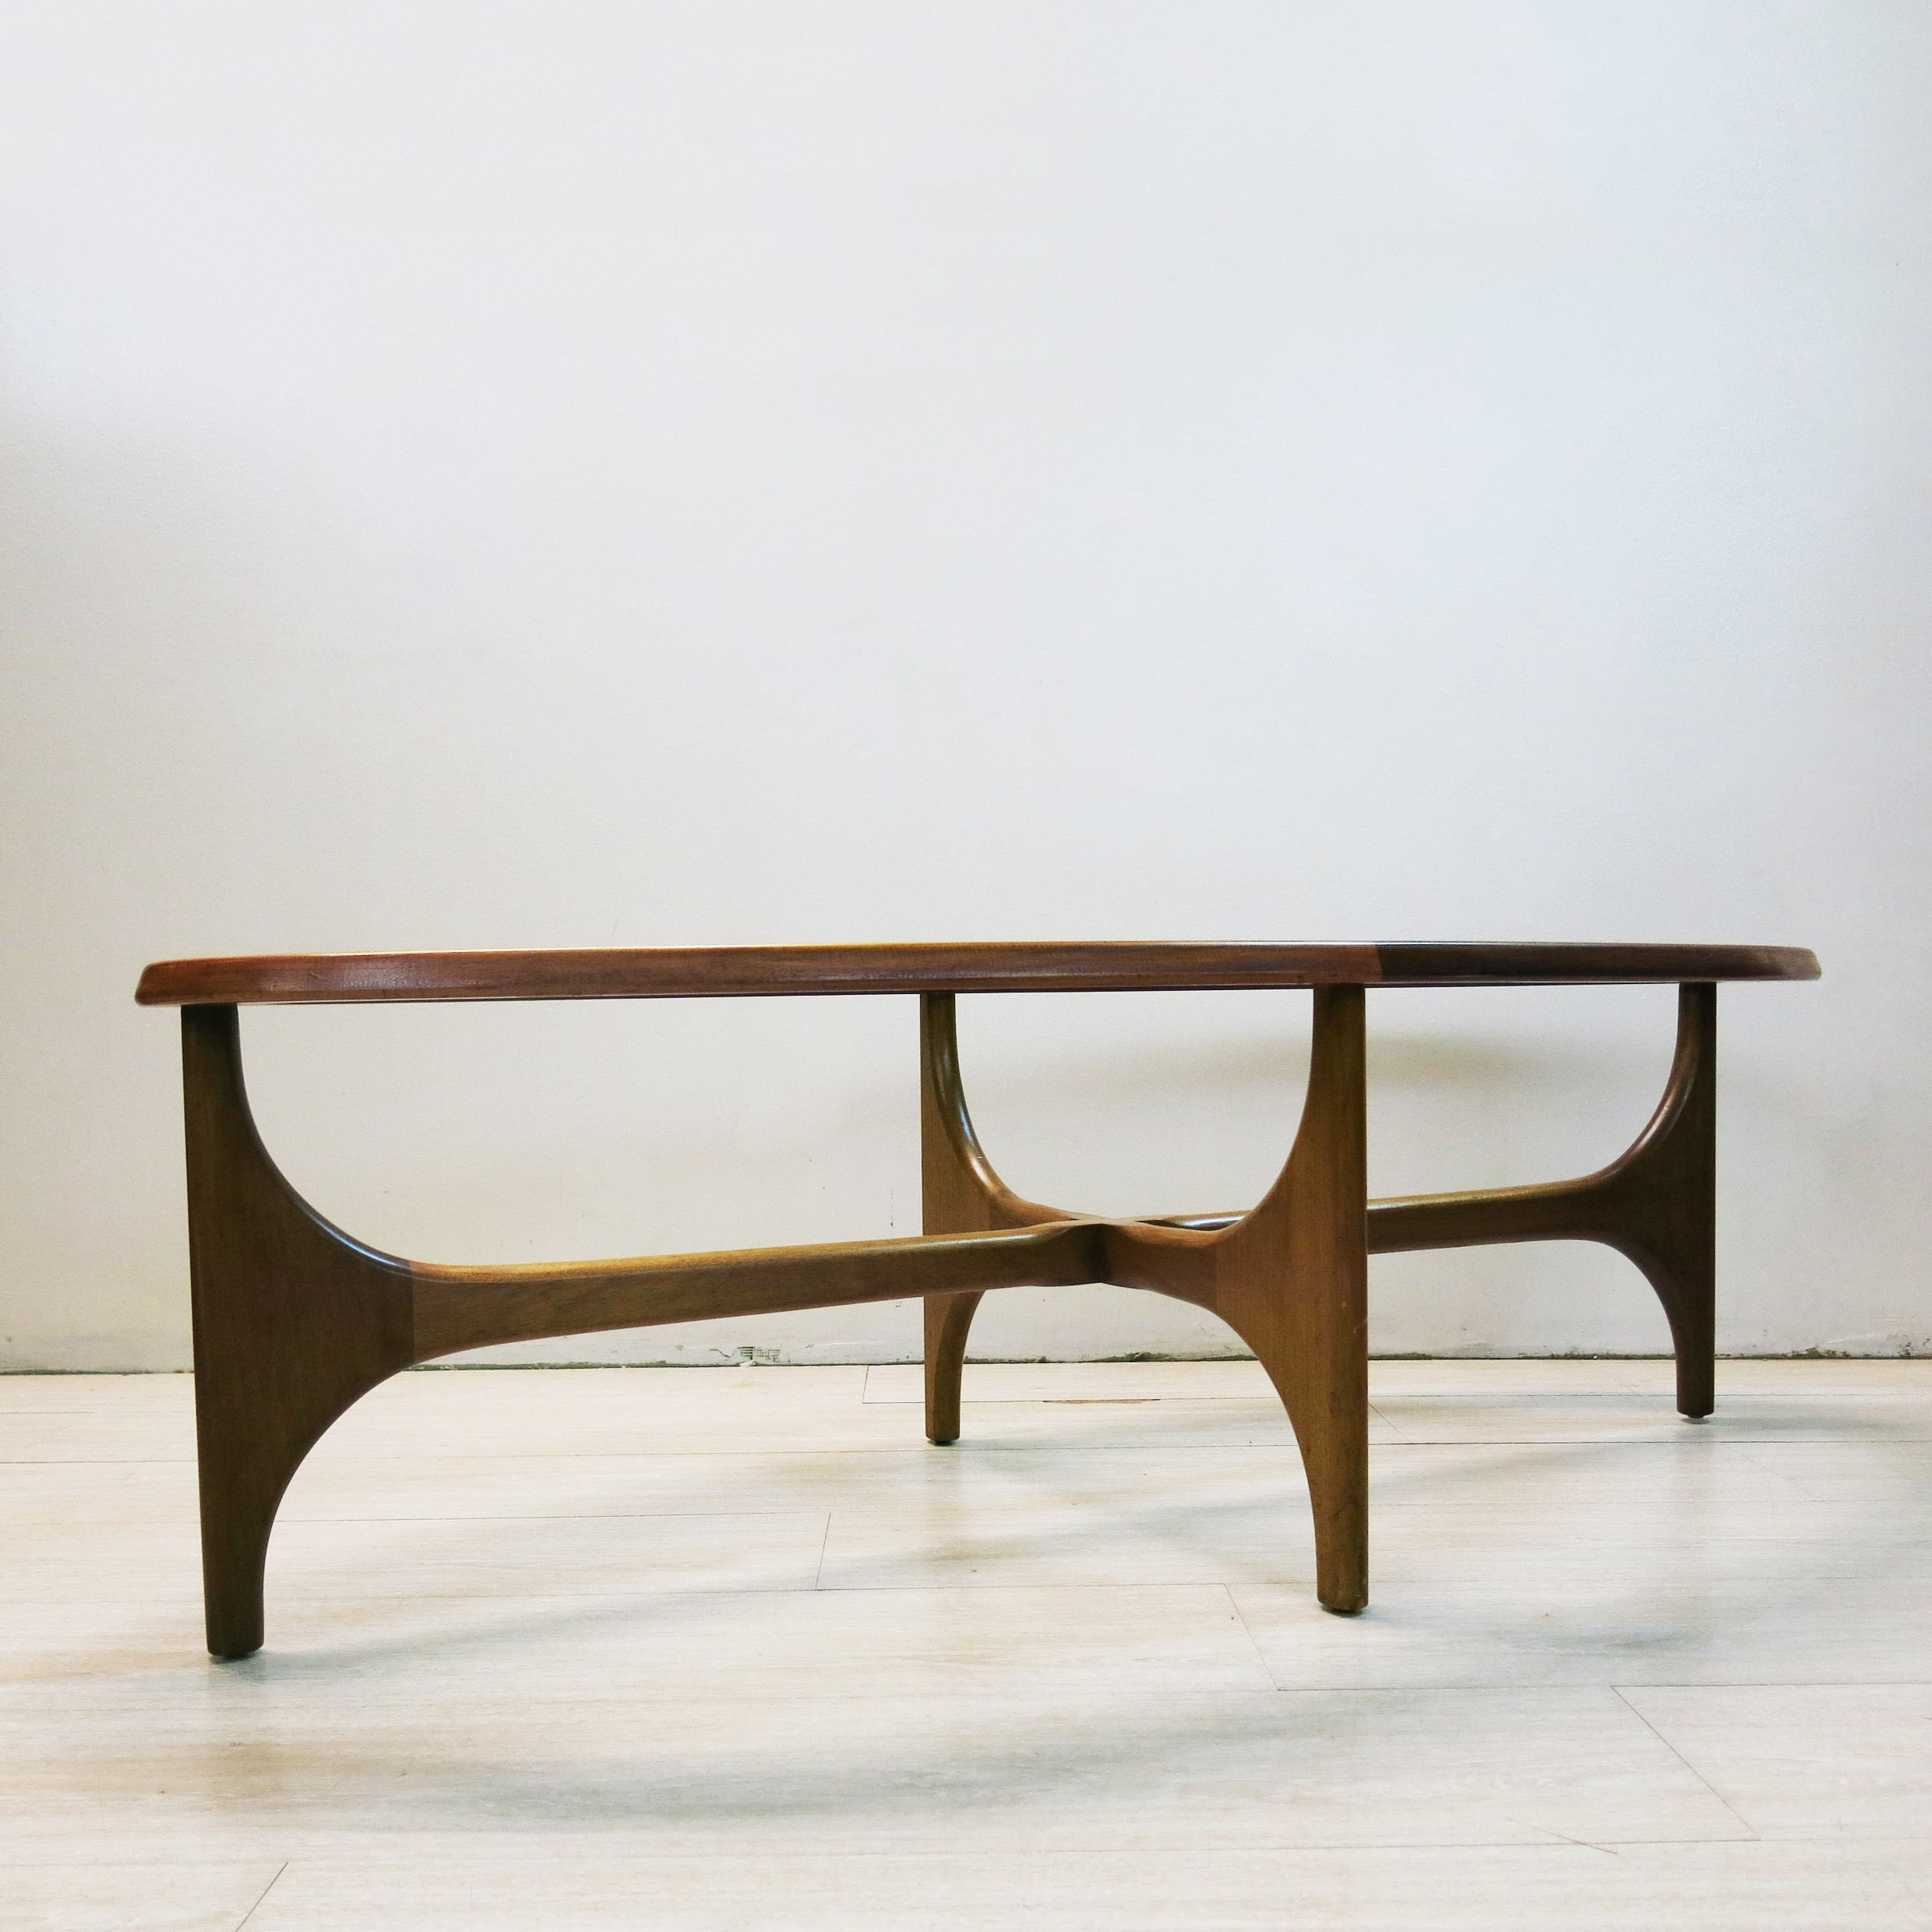 English Stonehill oval coffee table in teak wood and glass ...